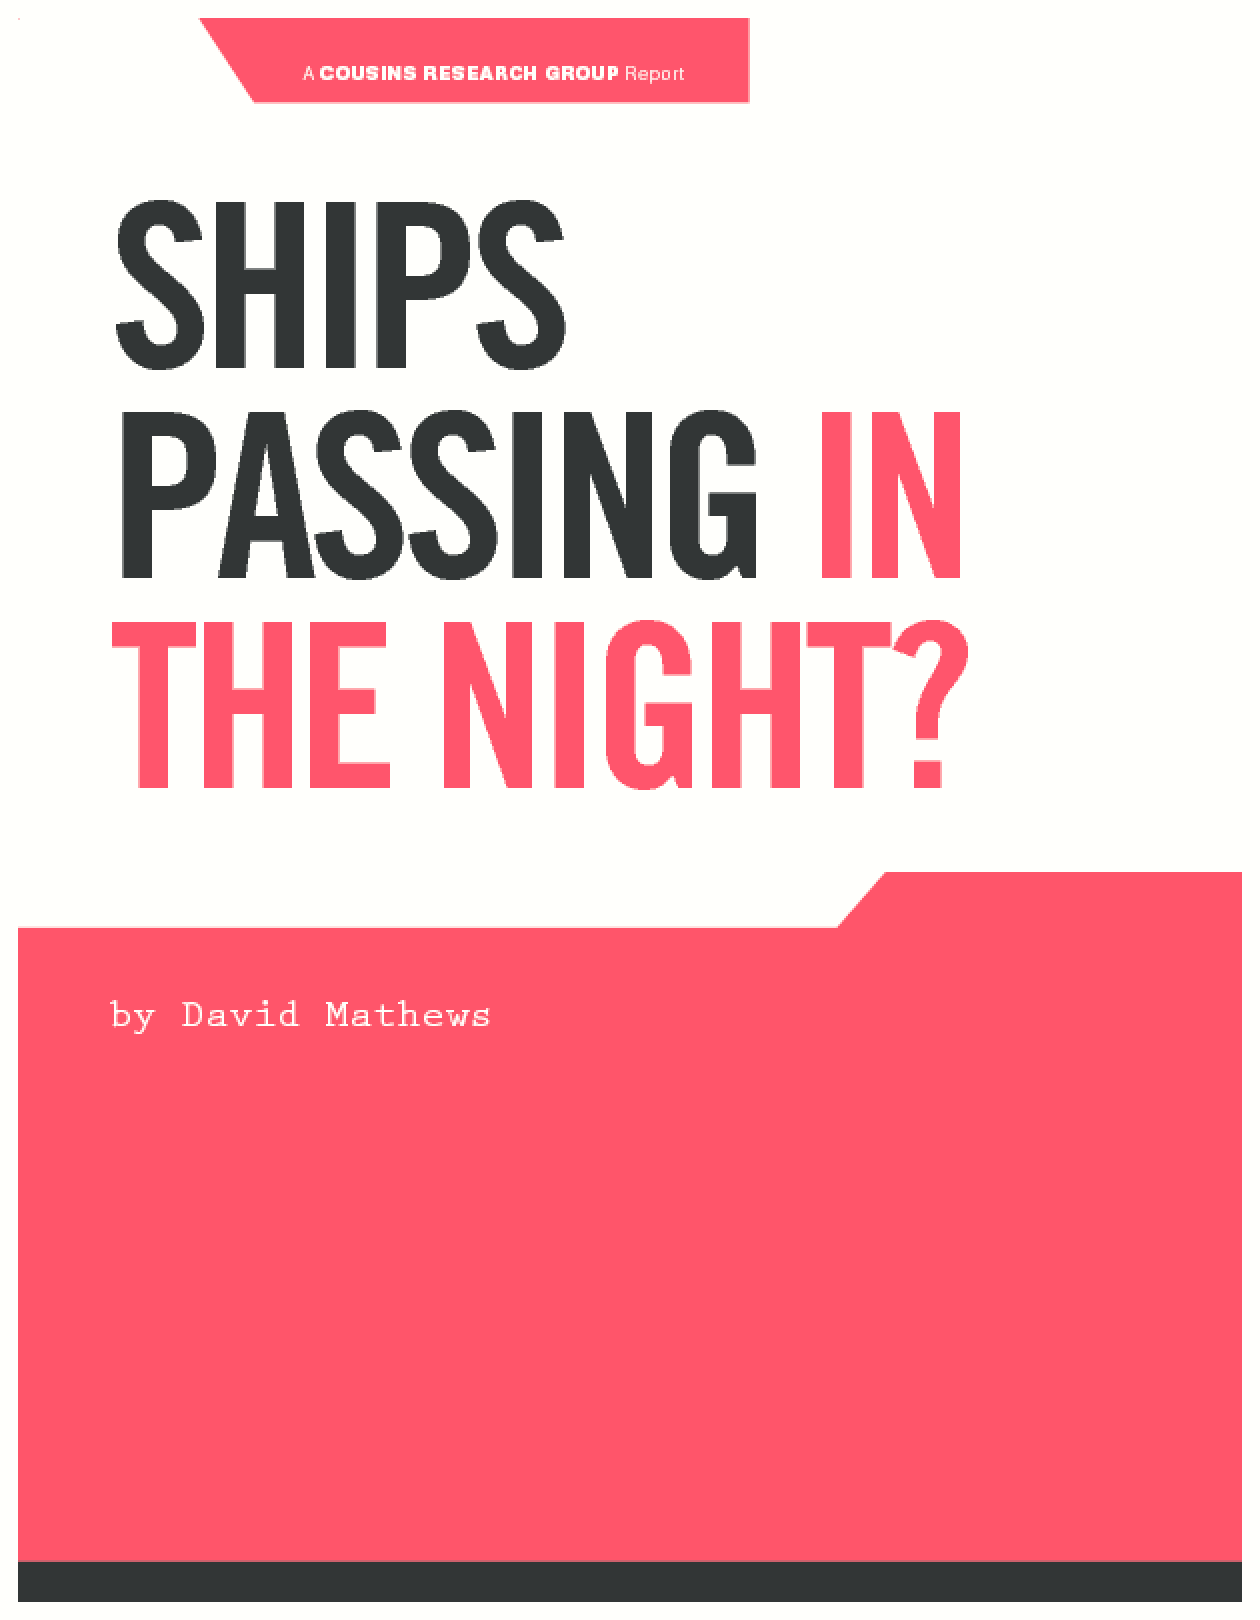 Ships Passing In The Night?